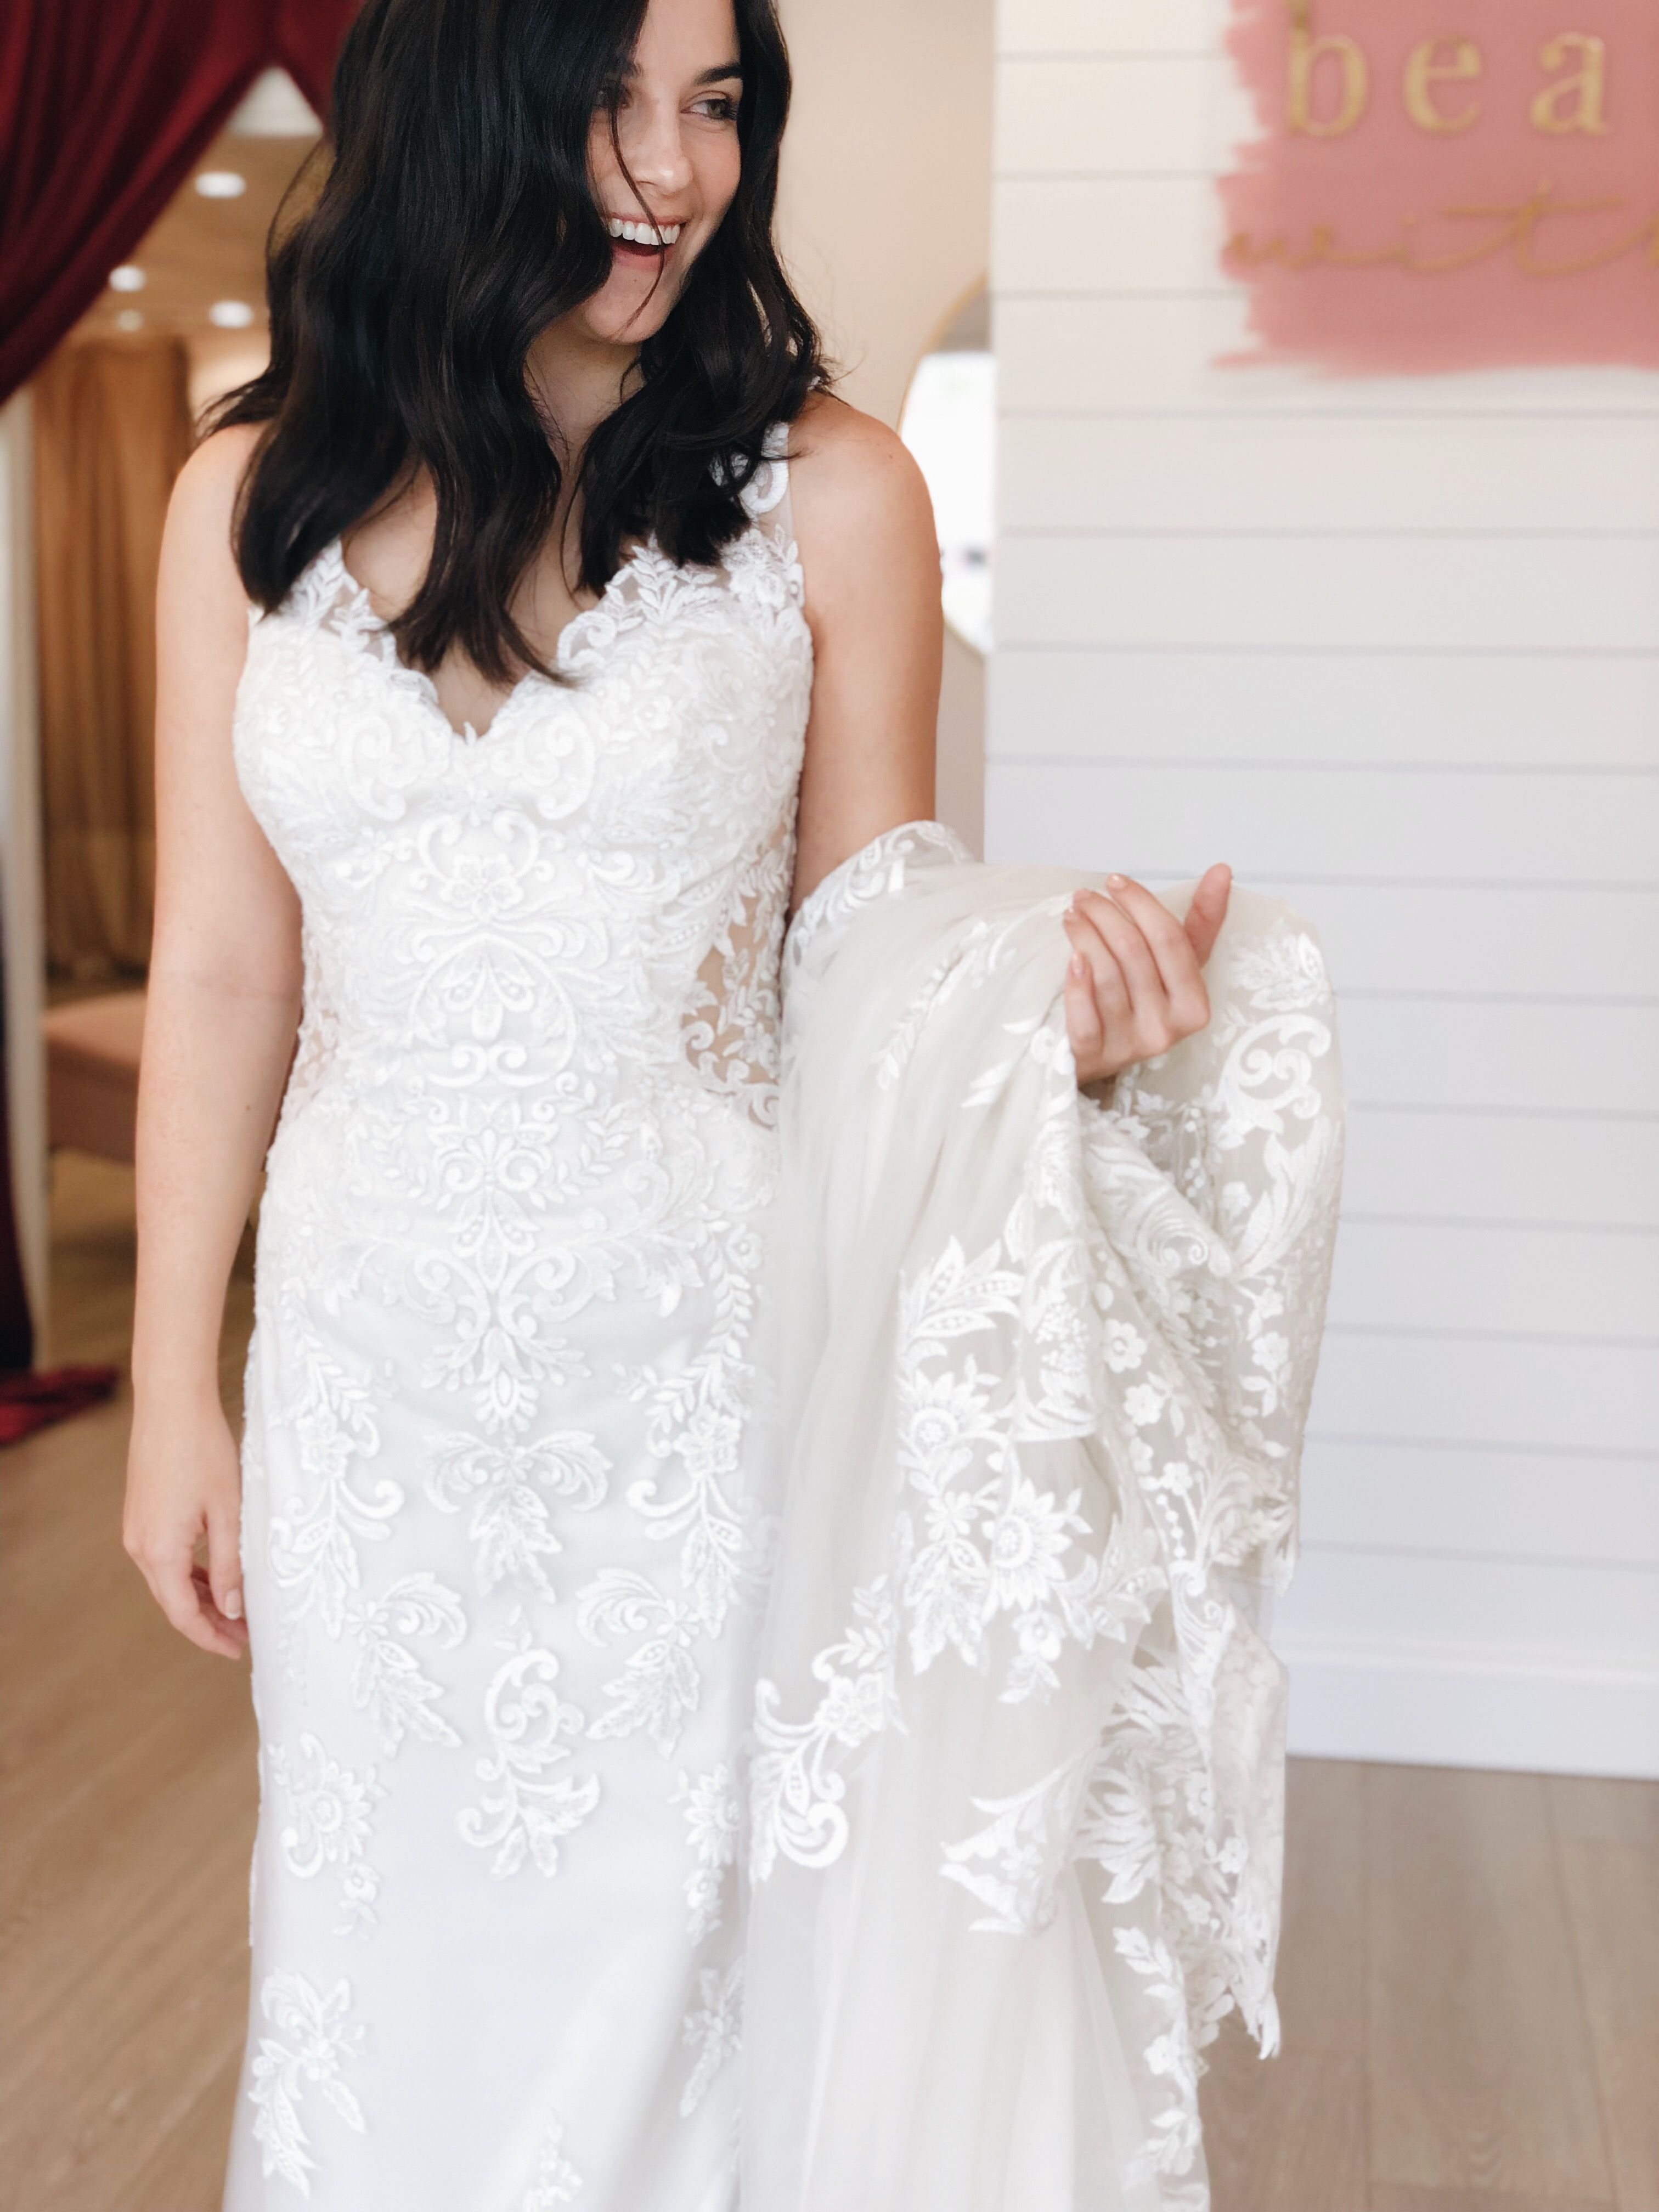 Big Smiles While Trying On Weddingdresses At Our Fernandina